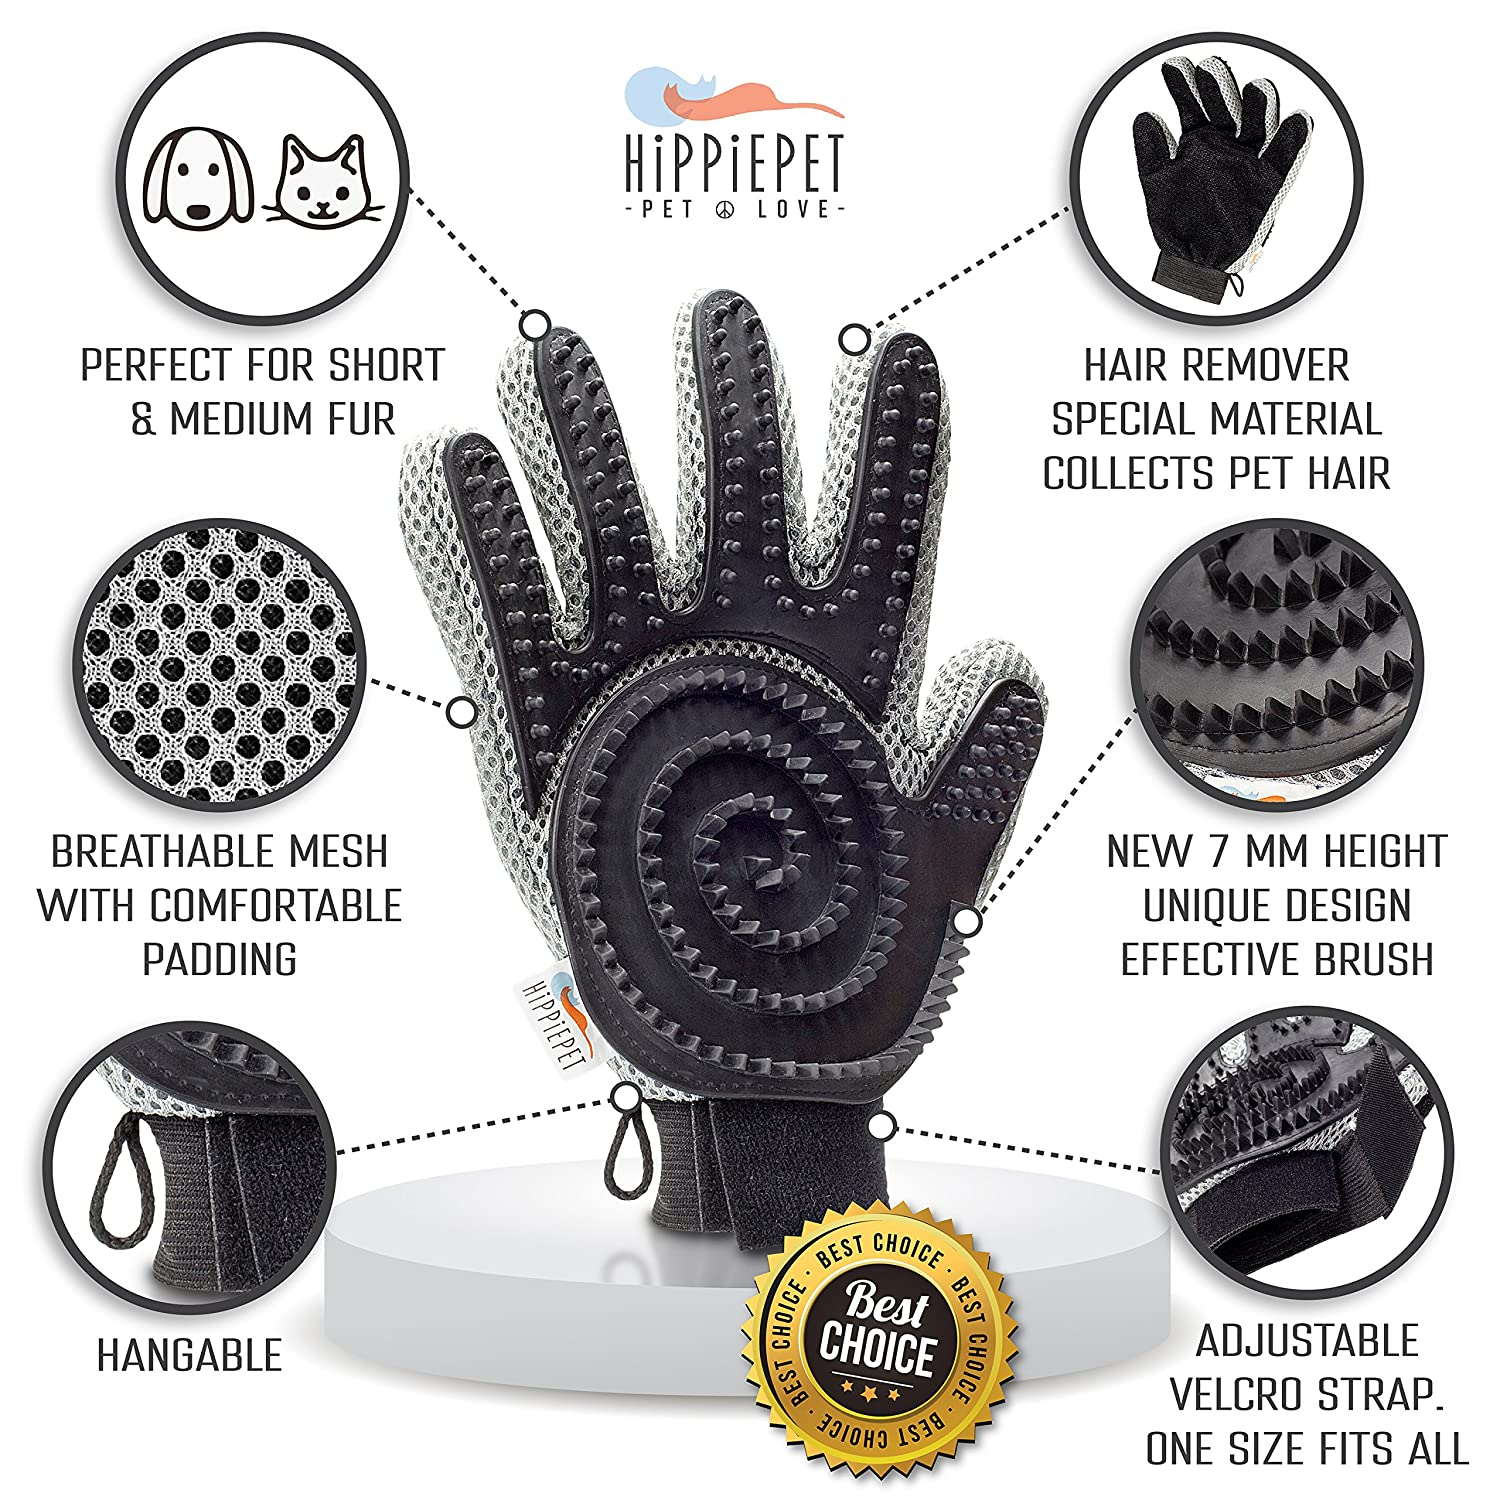 The Combi Glove – Pet Grooming Glove Brush with Dog and Cat Hair Remover from Furniture Carpets Clothes De Shedding Silicone Massage Mitt by Hippiepet RONNE BRANDS and More for Easy Clean-Up – Double-Sided